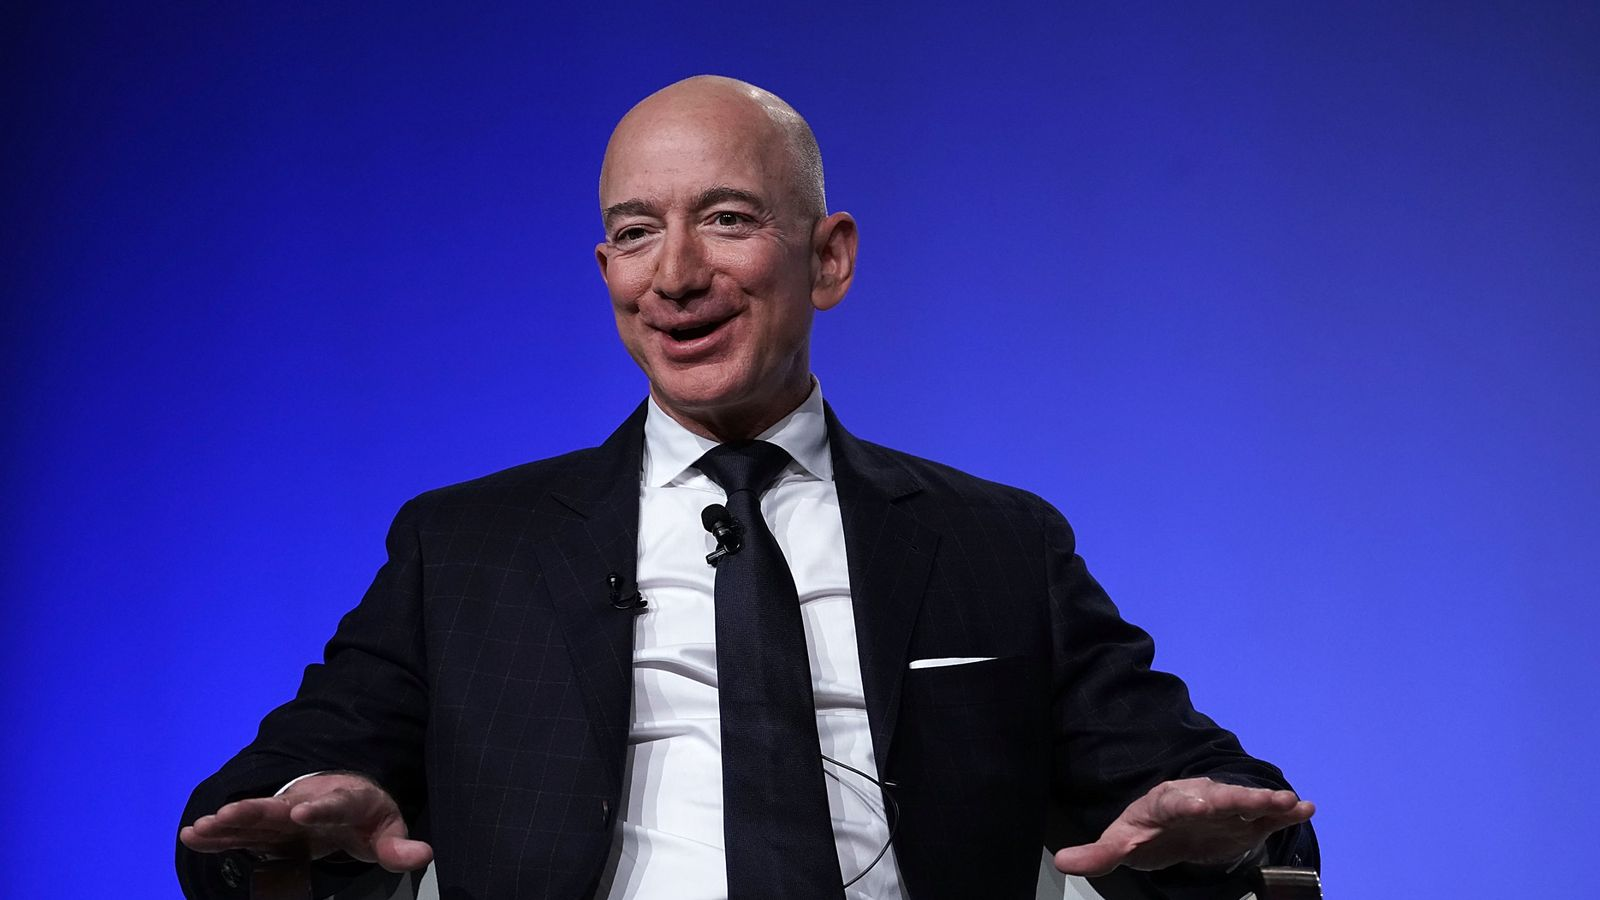 Amazon boss Jeff Bezos makes carbon neutral pledge on eve of worker protests